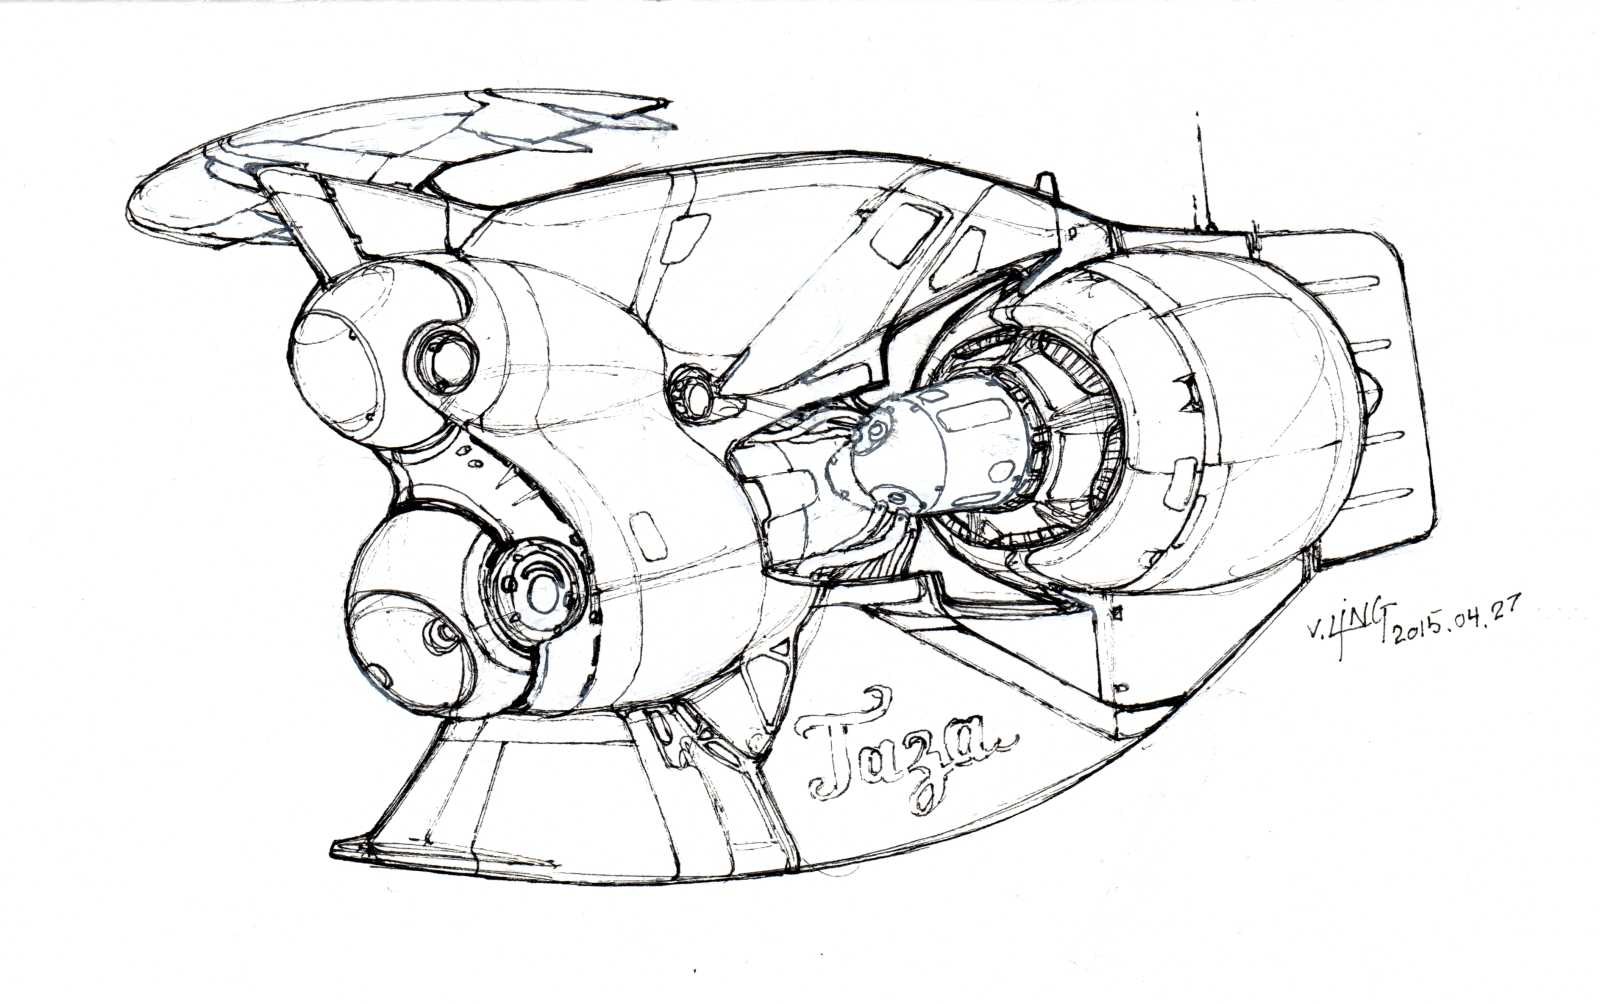 1600x1004 Spaceship Sketches Heavypoly Drawing, Engraving, Etching